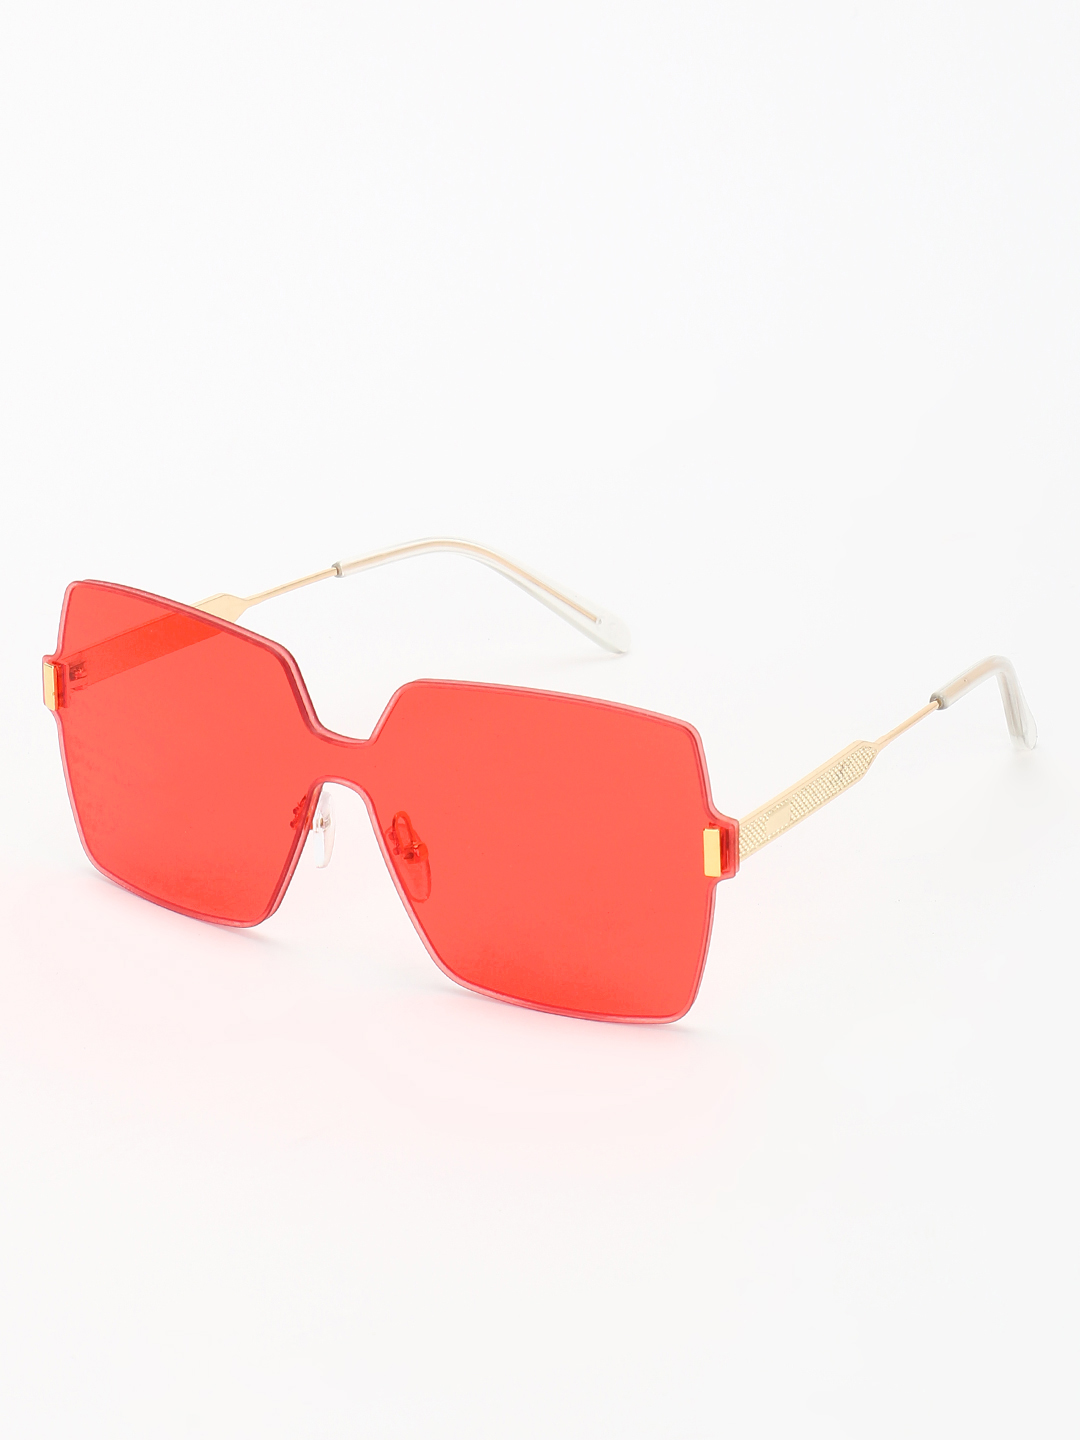 Style Fiesta Red Coloured Lens Oversized Retro Sunglasses 1